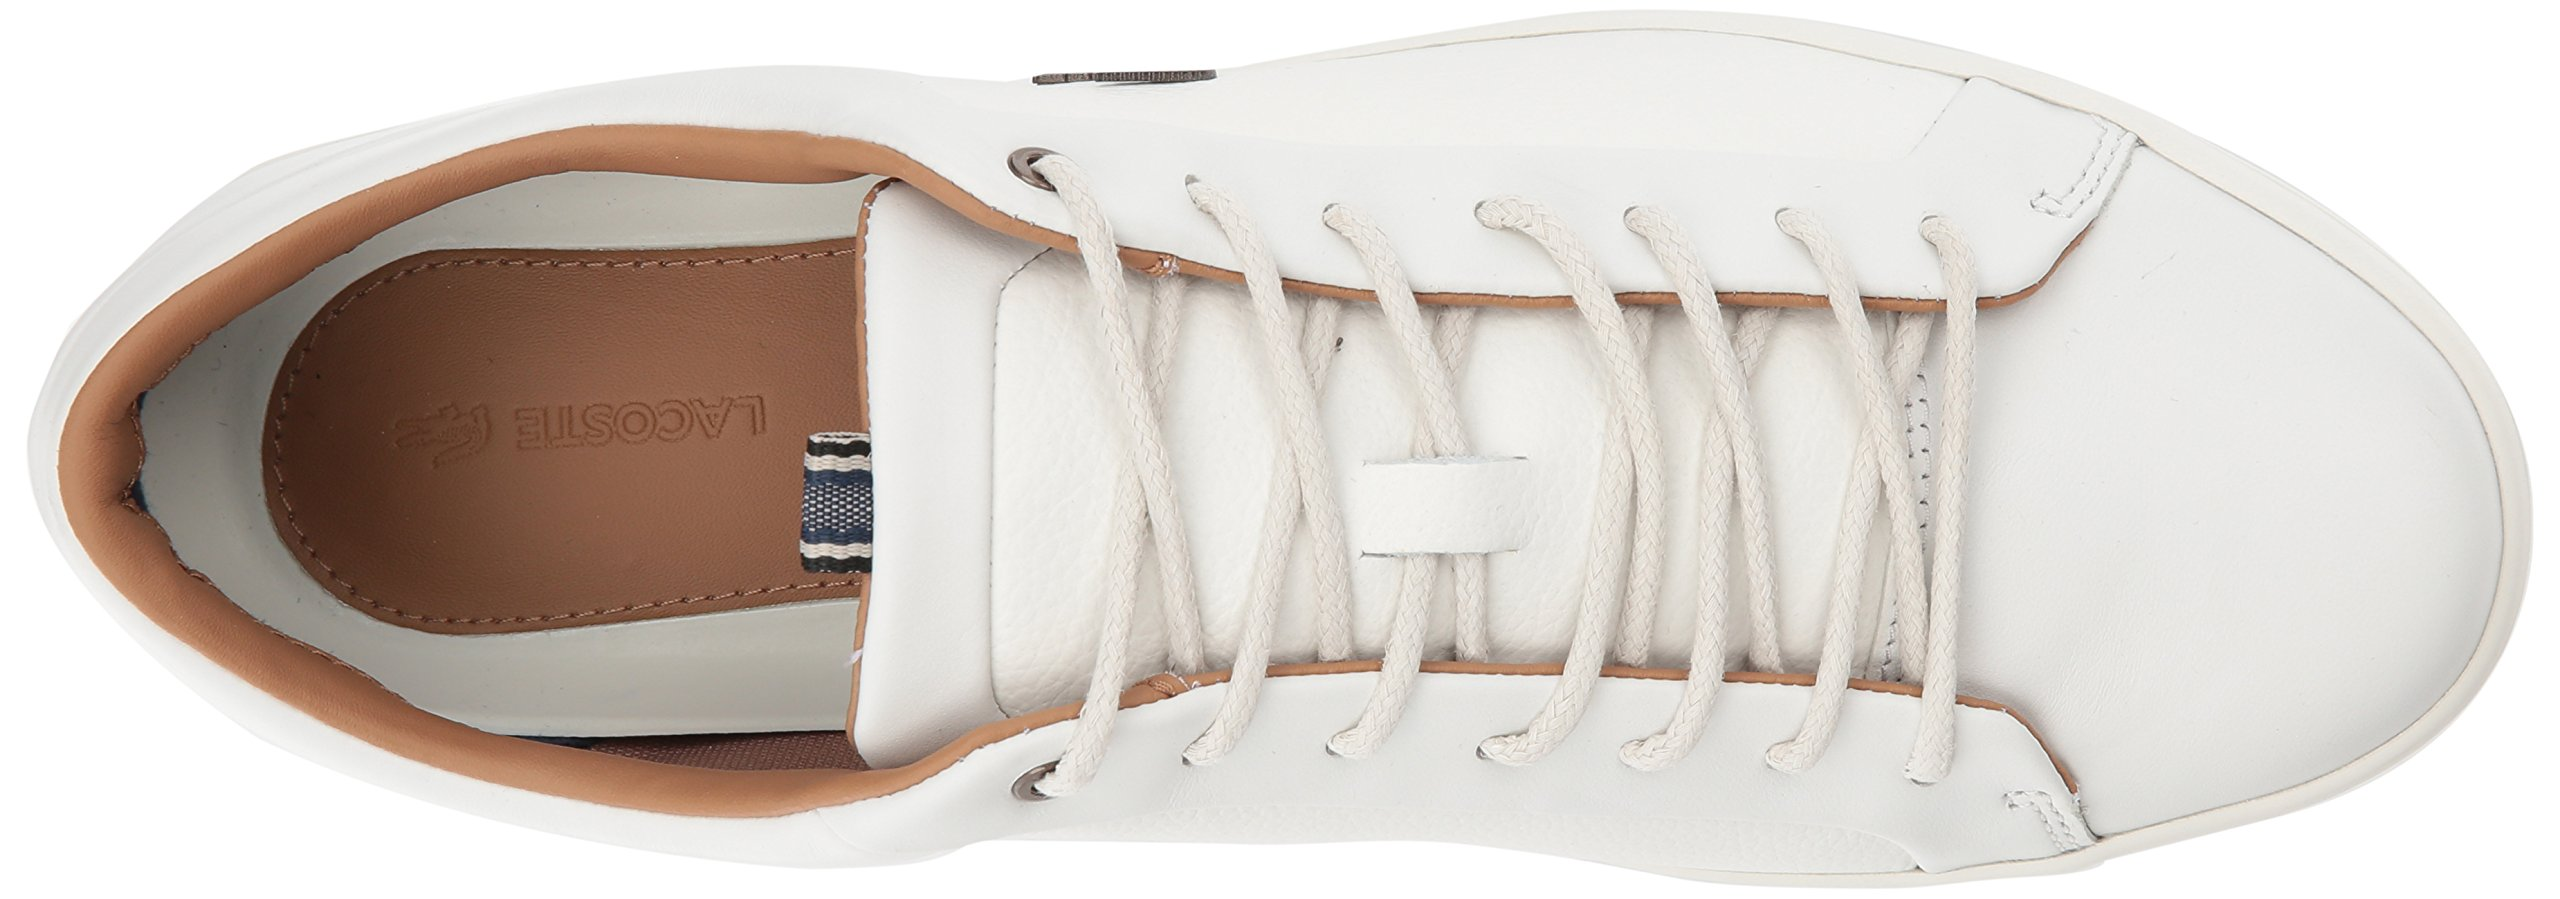 Lacoste Men's Straightset Sneakers by Lacoste (Image #8)